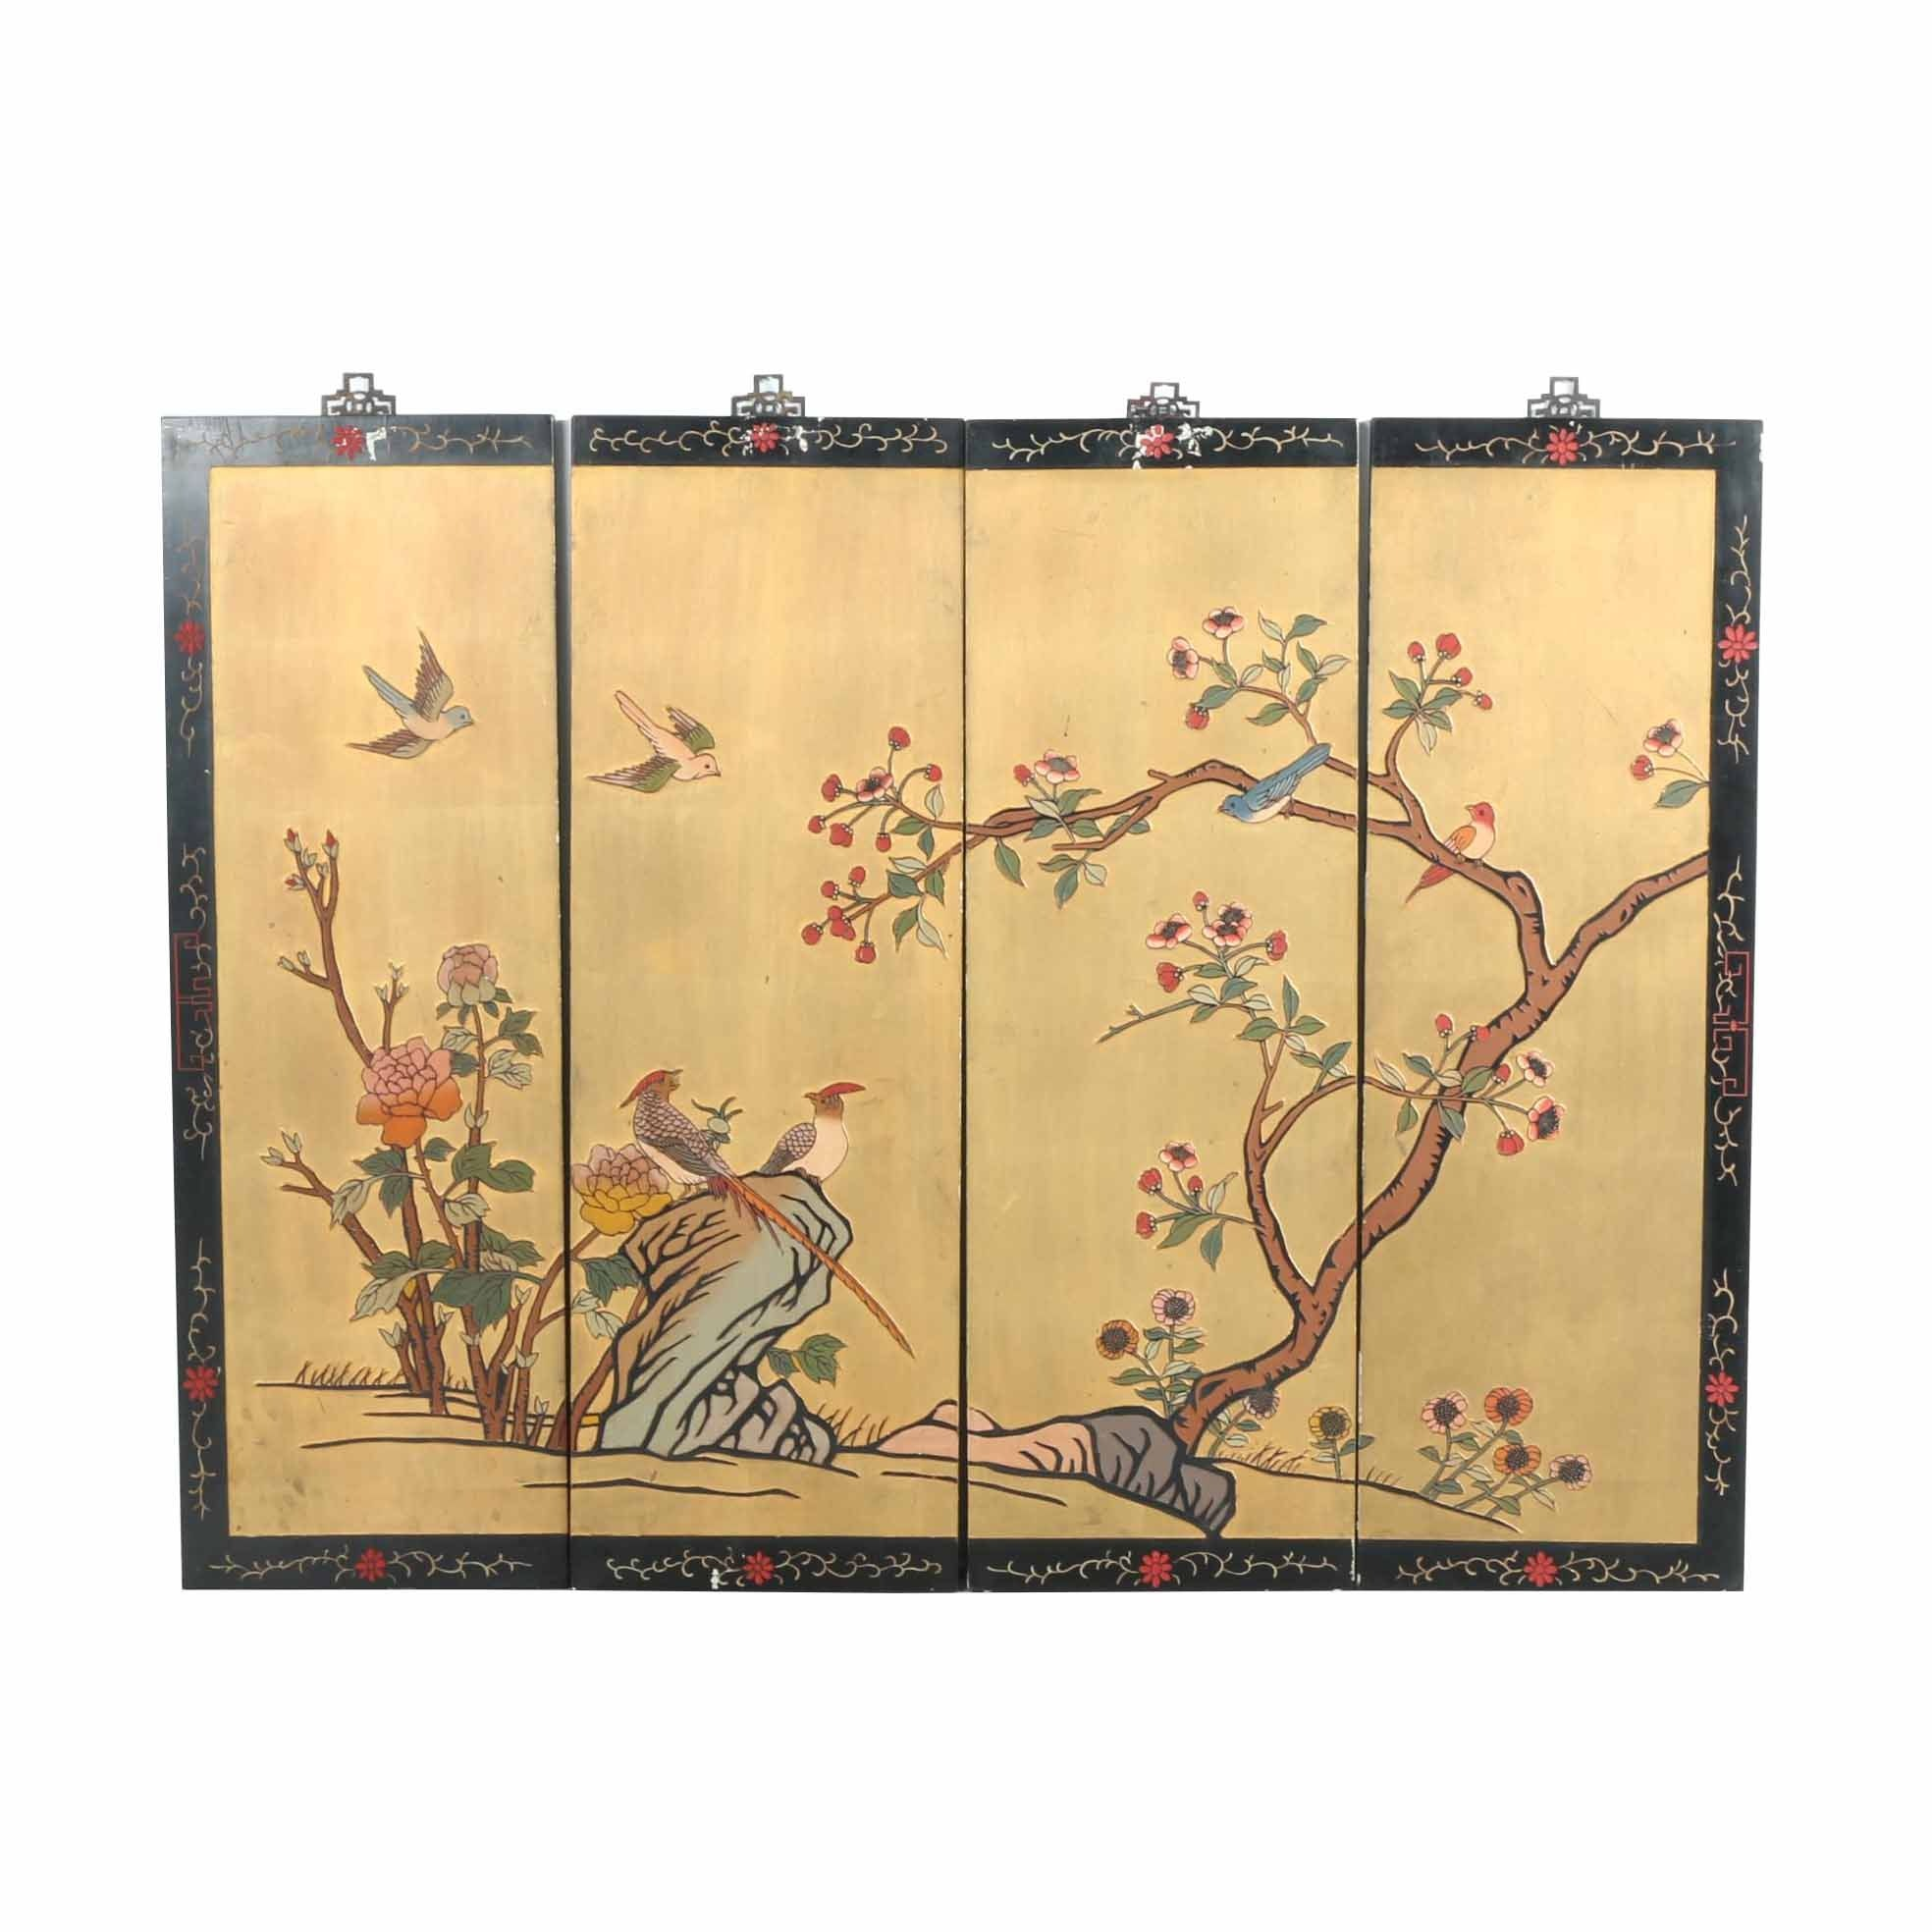 Chinese Painted Wood Hanging Screen With Birds and Flowers